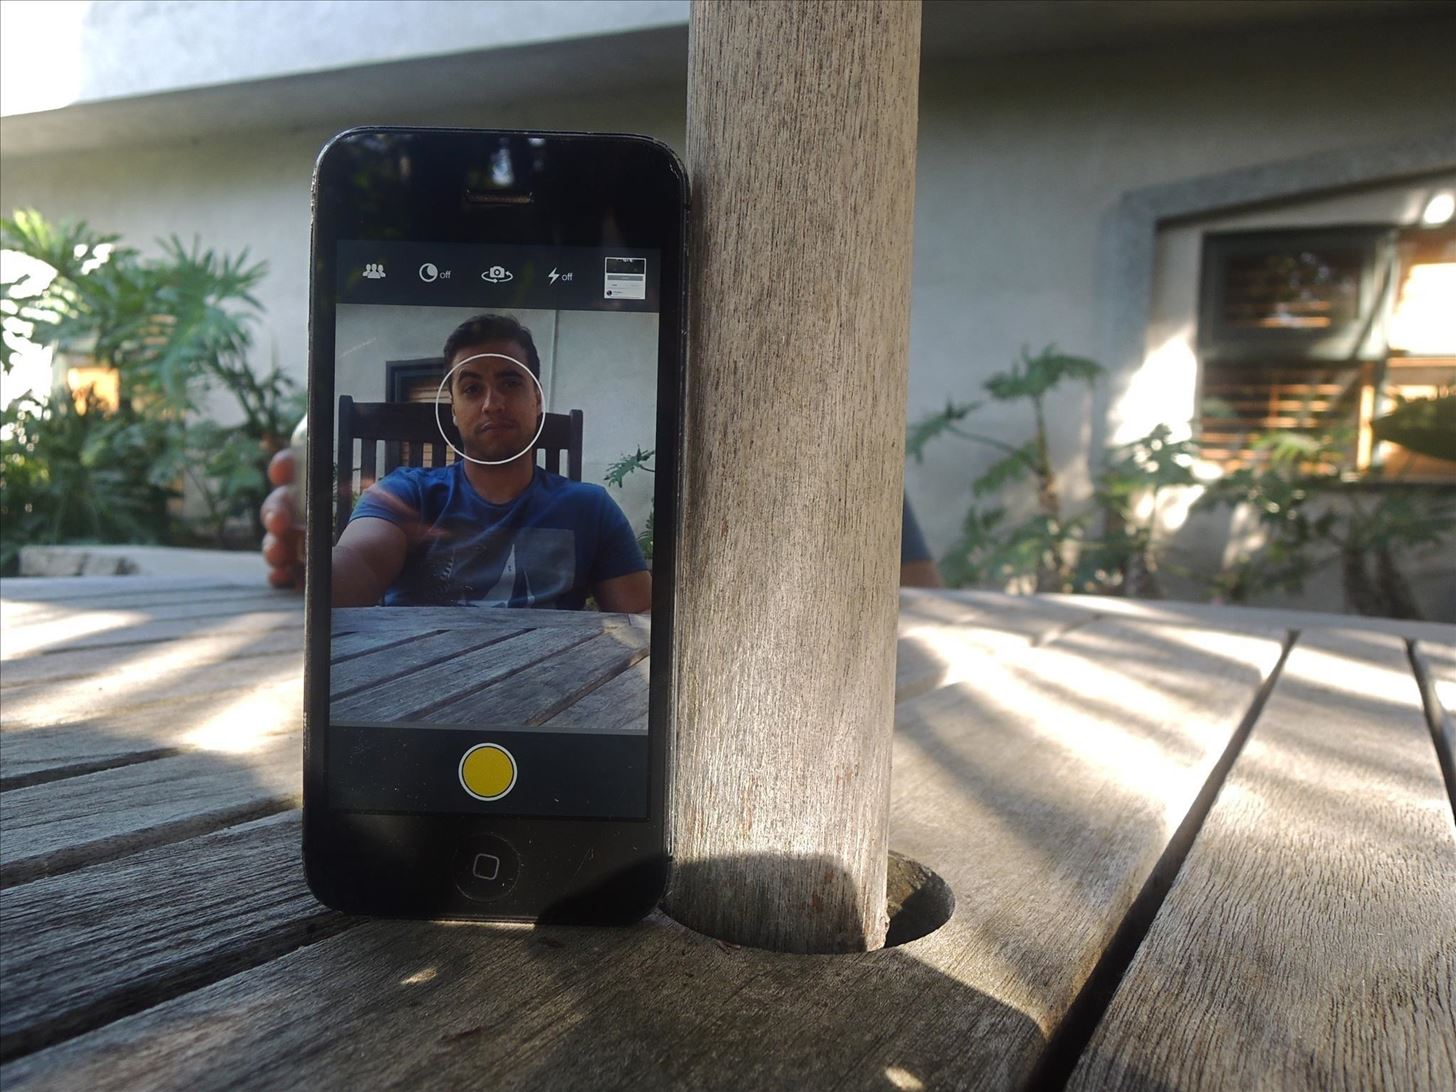 How to Auto-Extract Only the Best Photo Stills from Your iPhone Videos